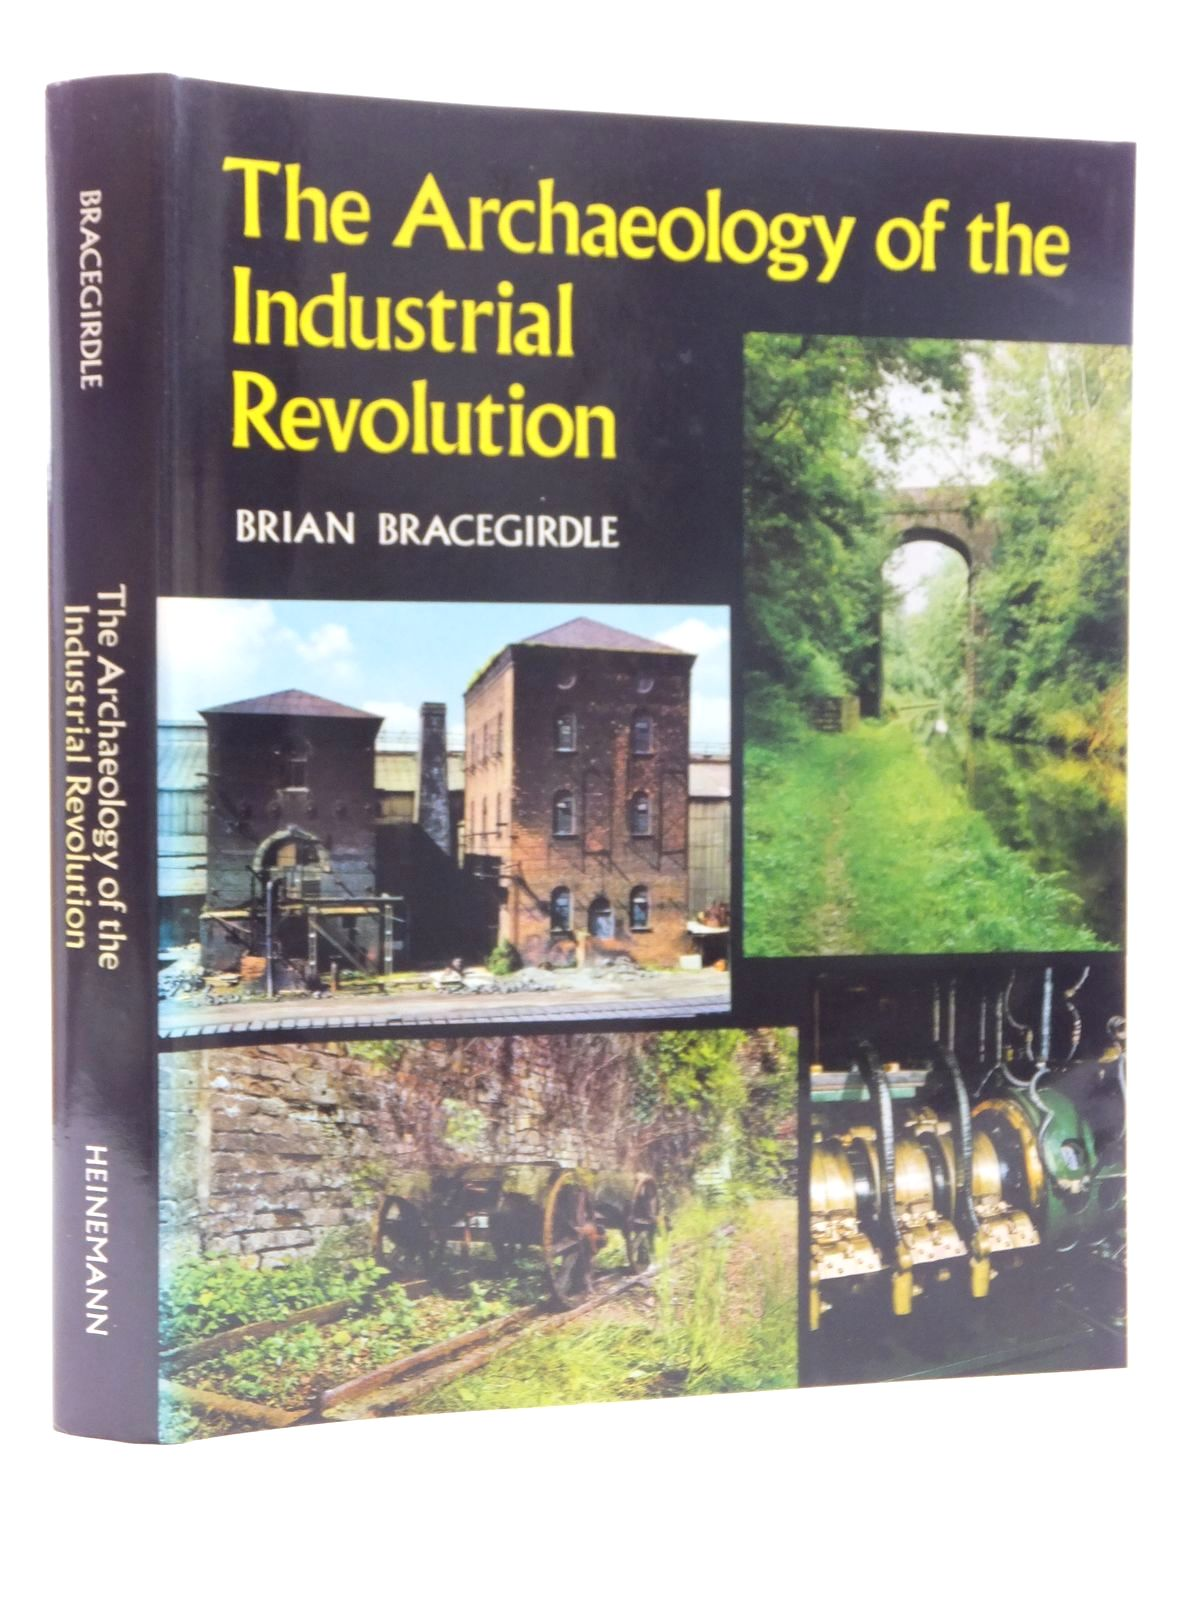 Photo of THE ARCHAEOLOGY OF THE INDUSTRIAL REVOLUTION written by Bracegirdle, Brian published by Heinemann (STOCK CODE: 1609747)  for sale by Stella & Rose's Books